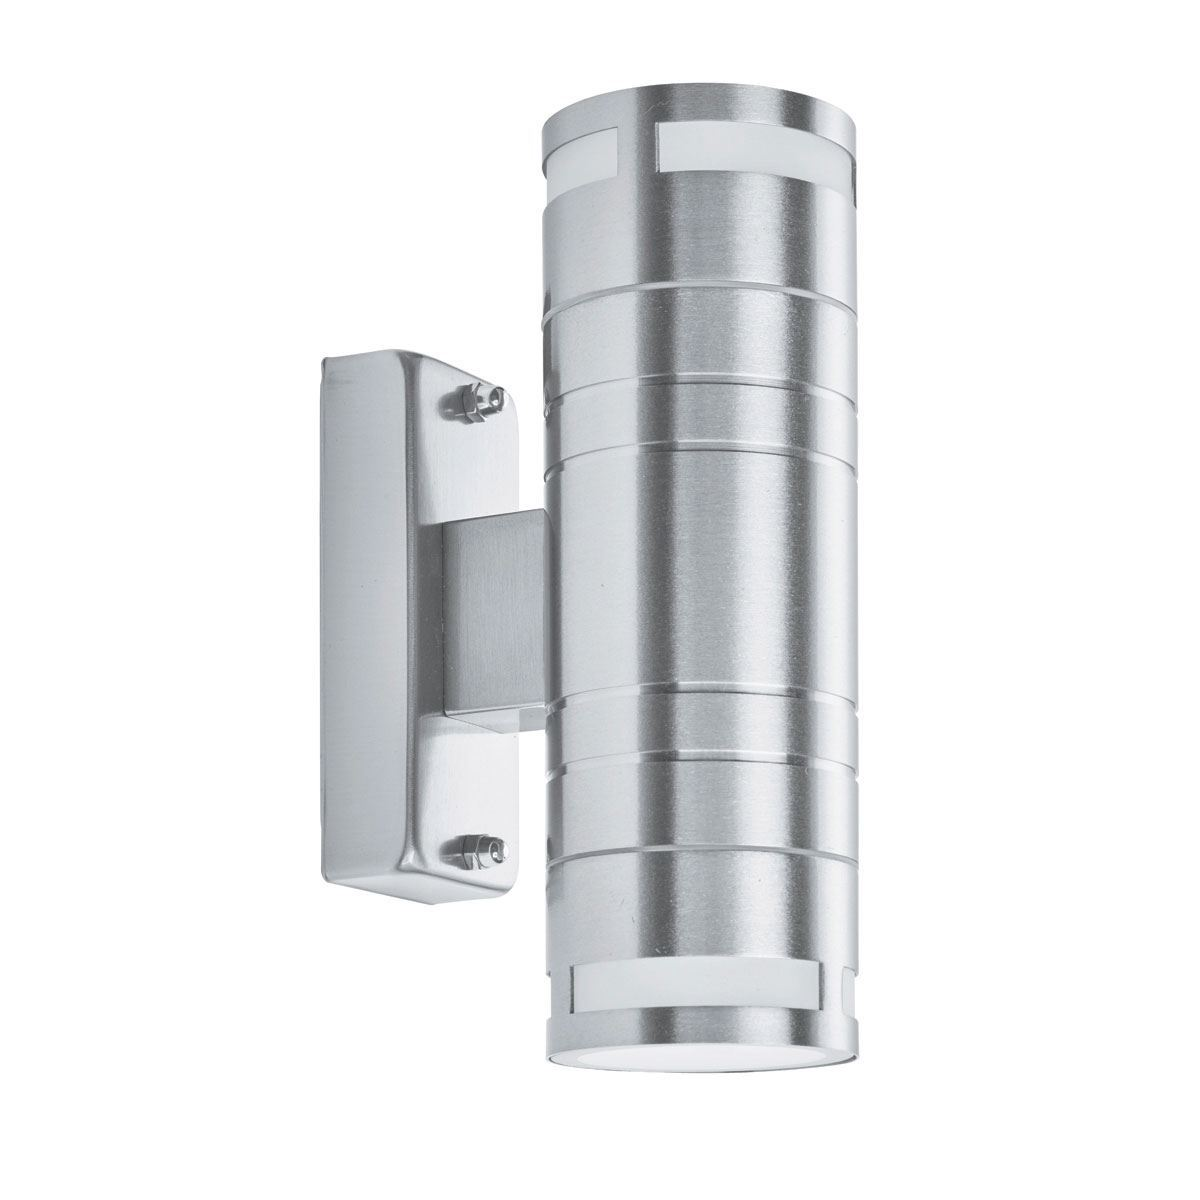 Ip44 Stainless Steel 2 Light Outdoor Wall Light With Clear Glass